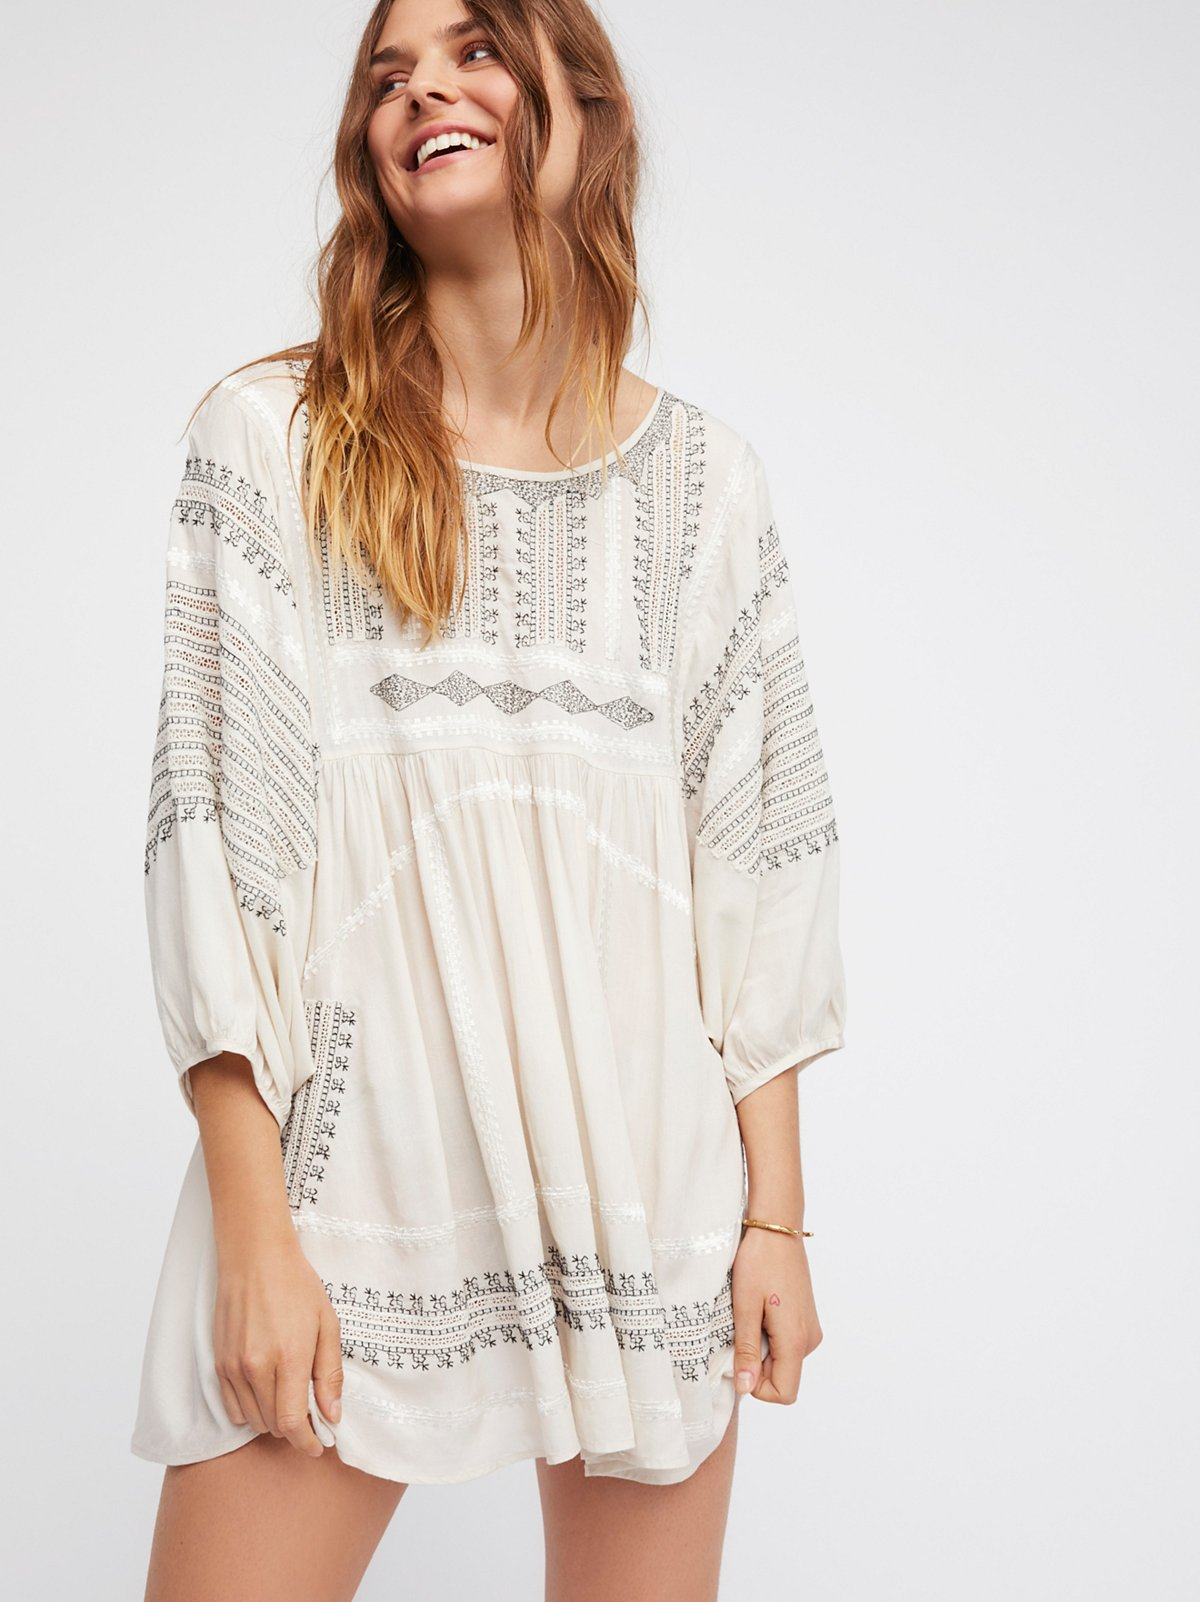 Wild One Embroidered Top